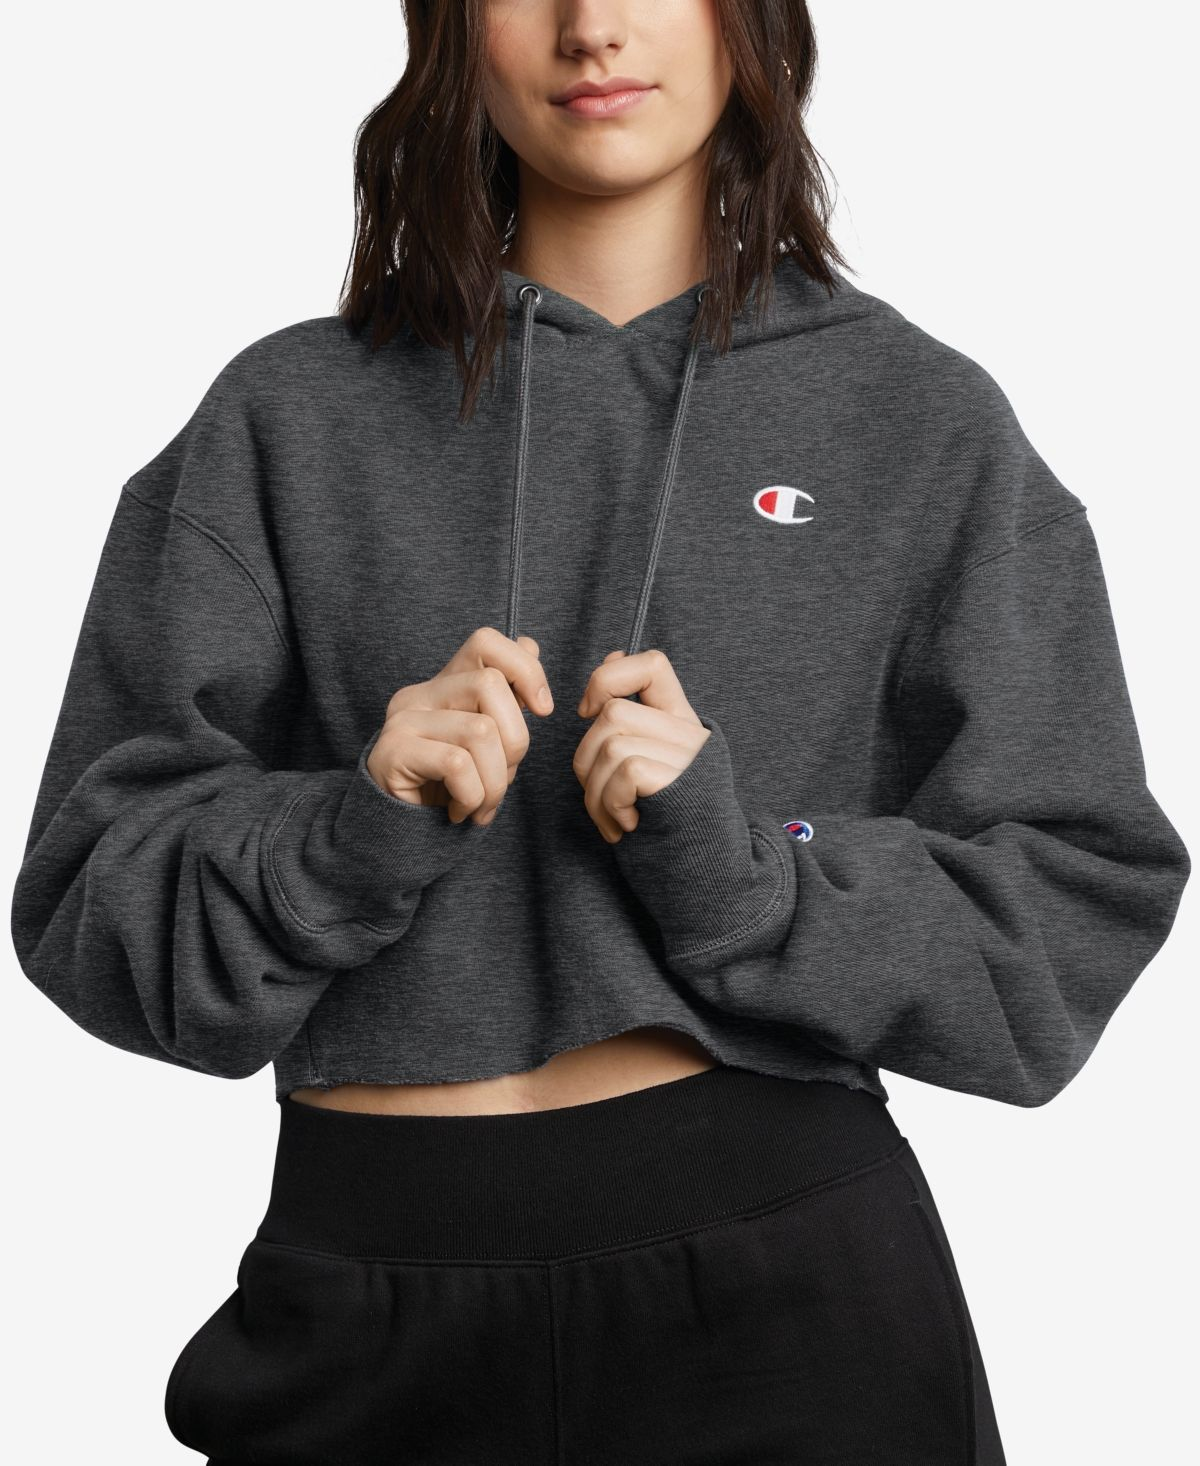 Champion Reverse Weave Cropped Hoodie Oxford Gray Cropped Hoodie Outfit Cropped Hoodie Champion Clothing [ 1466 x 1200 Pixel ]